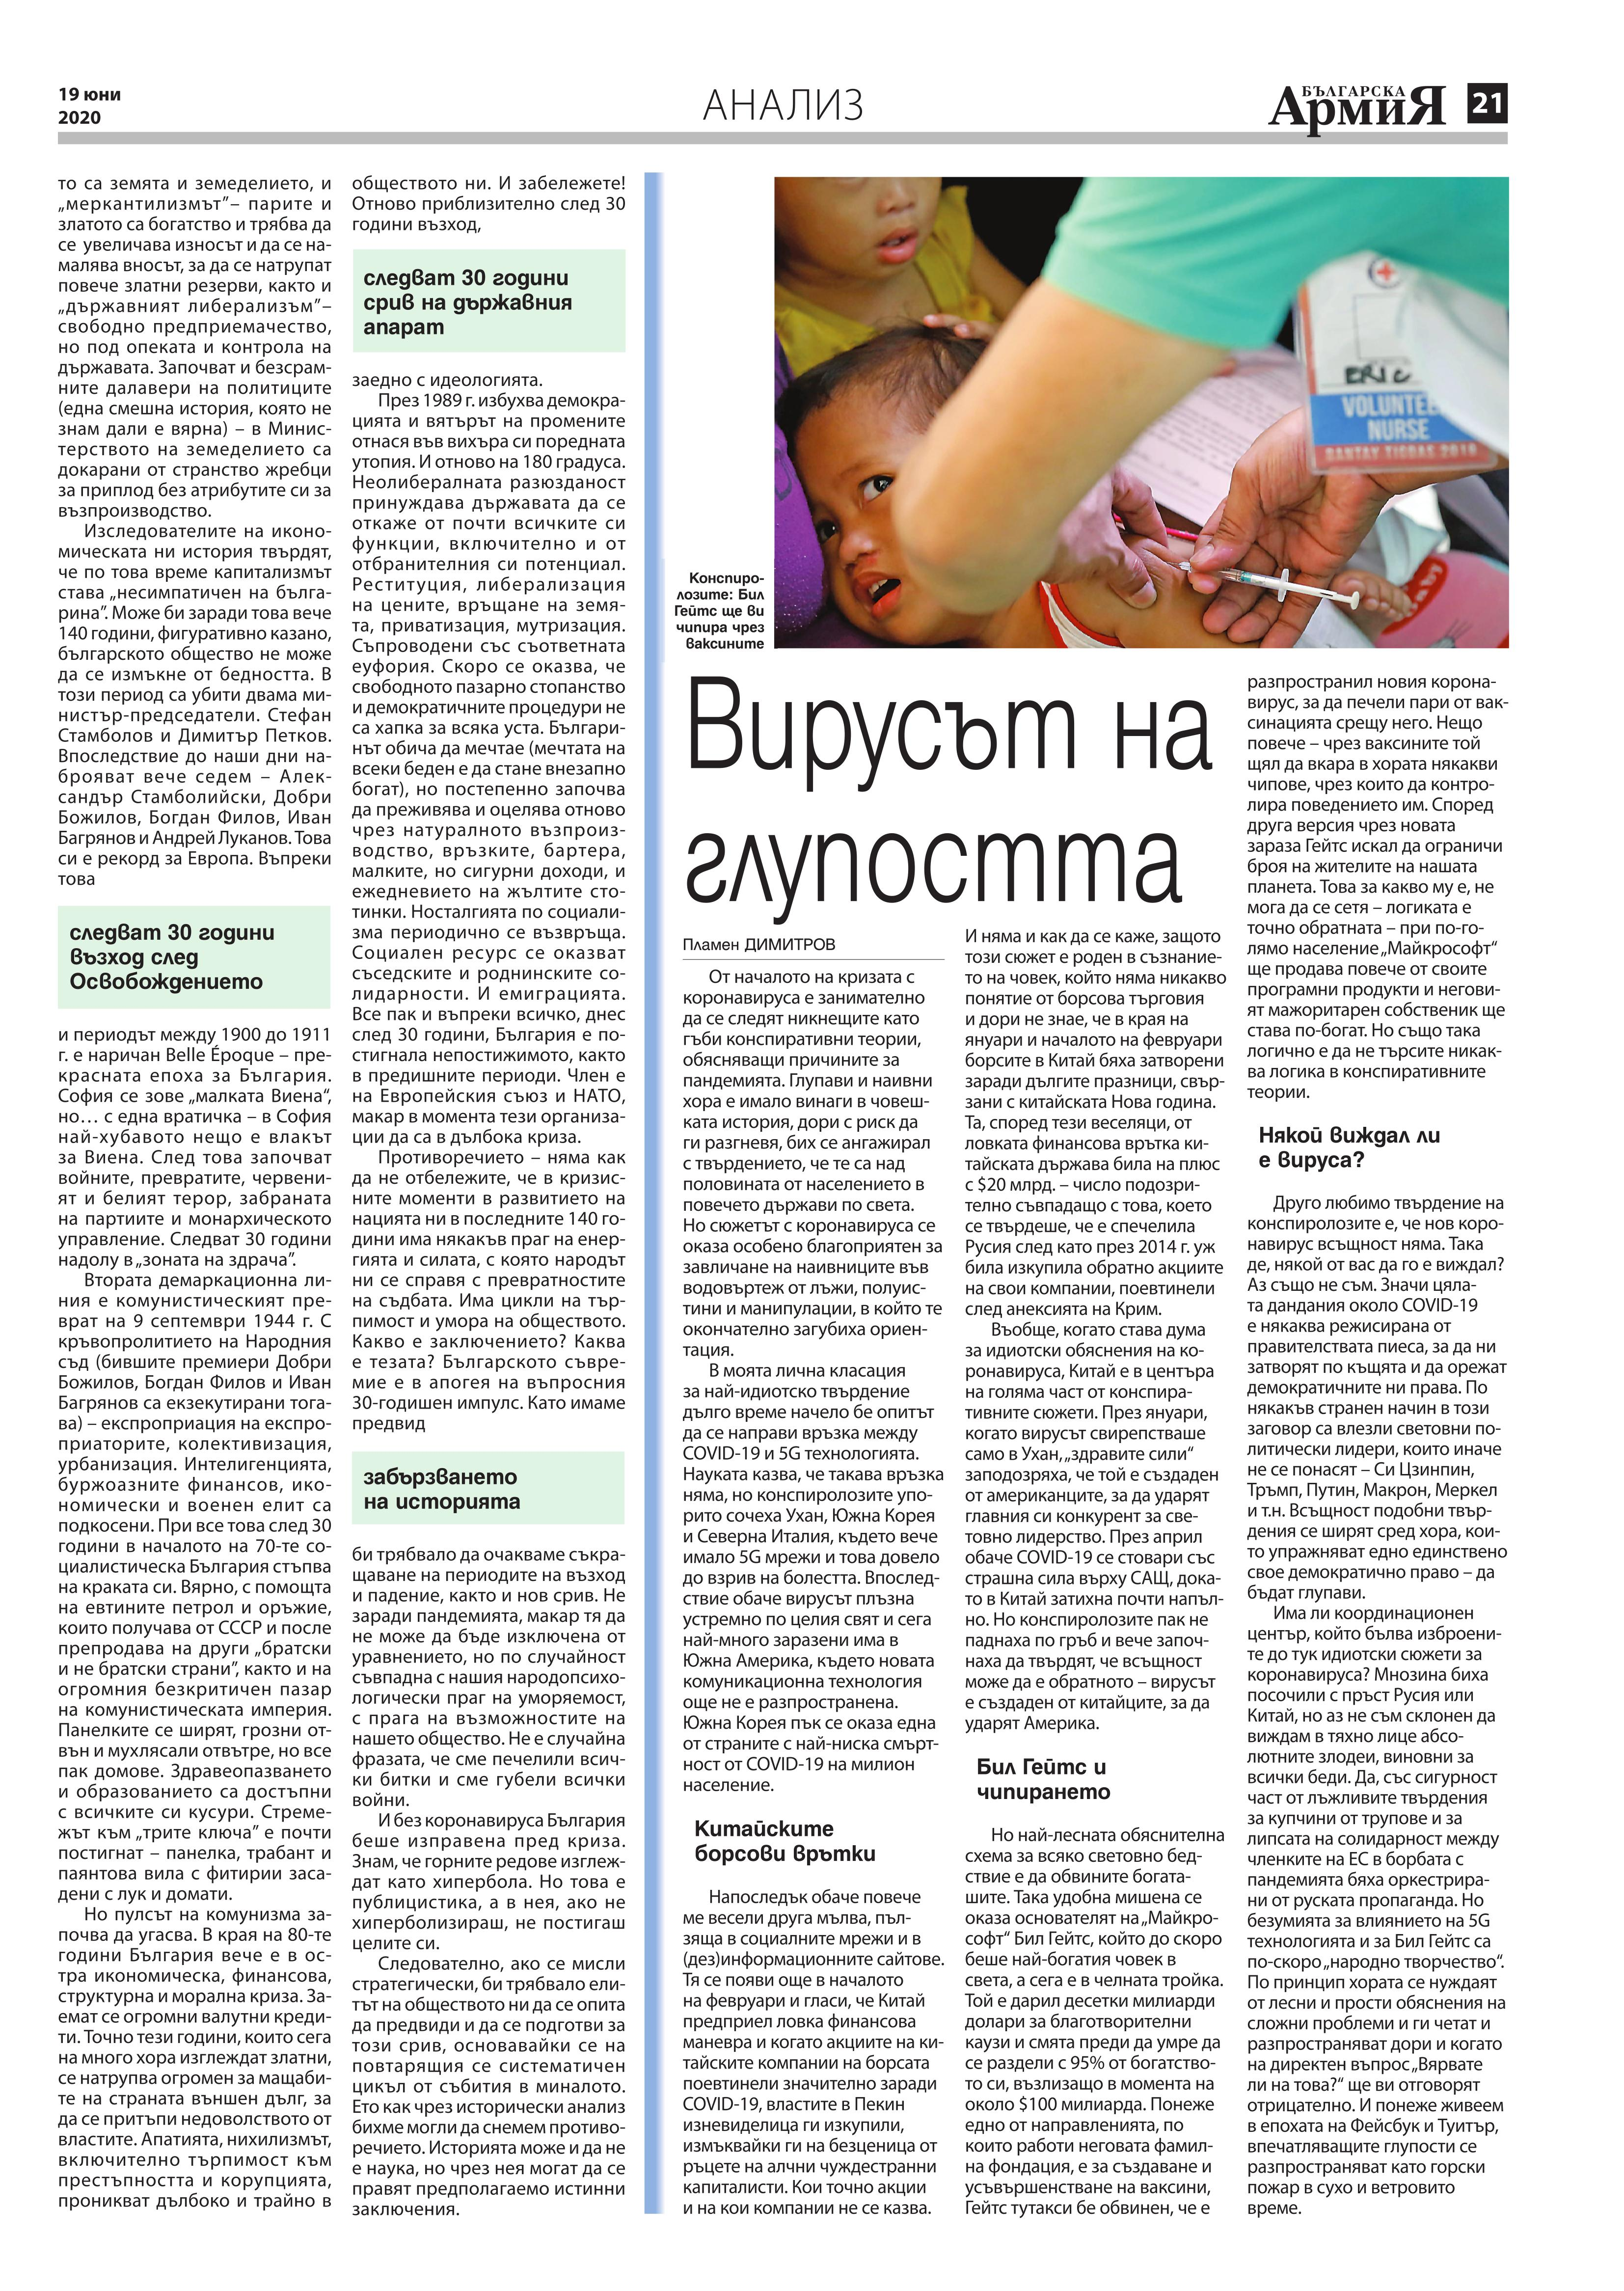 https://armymedia.bg/wp-content/uploads/2015/06/21.page1_-144.jpg